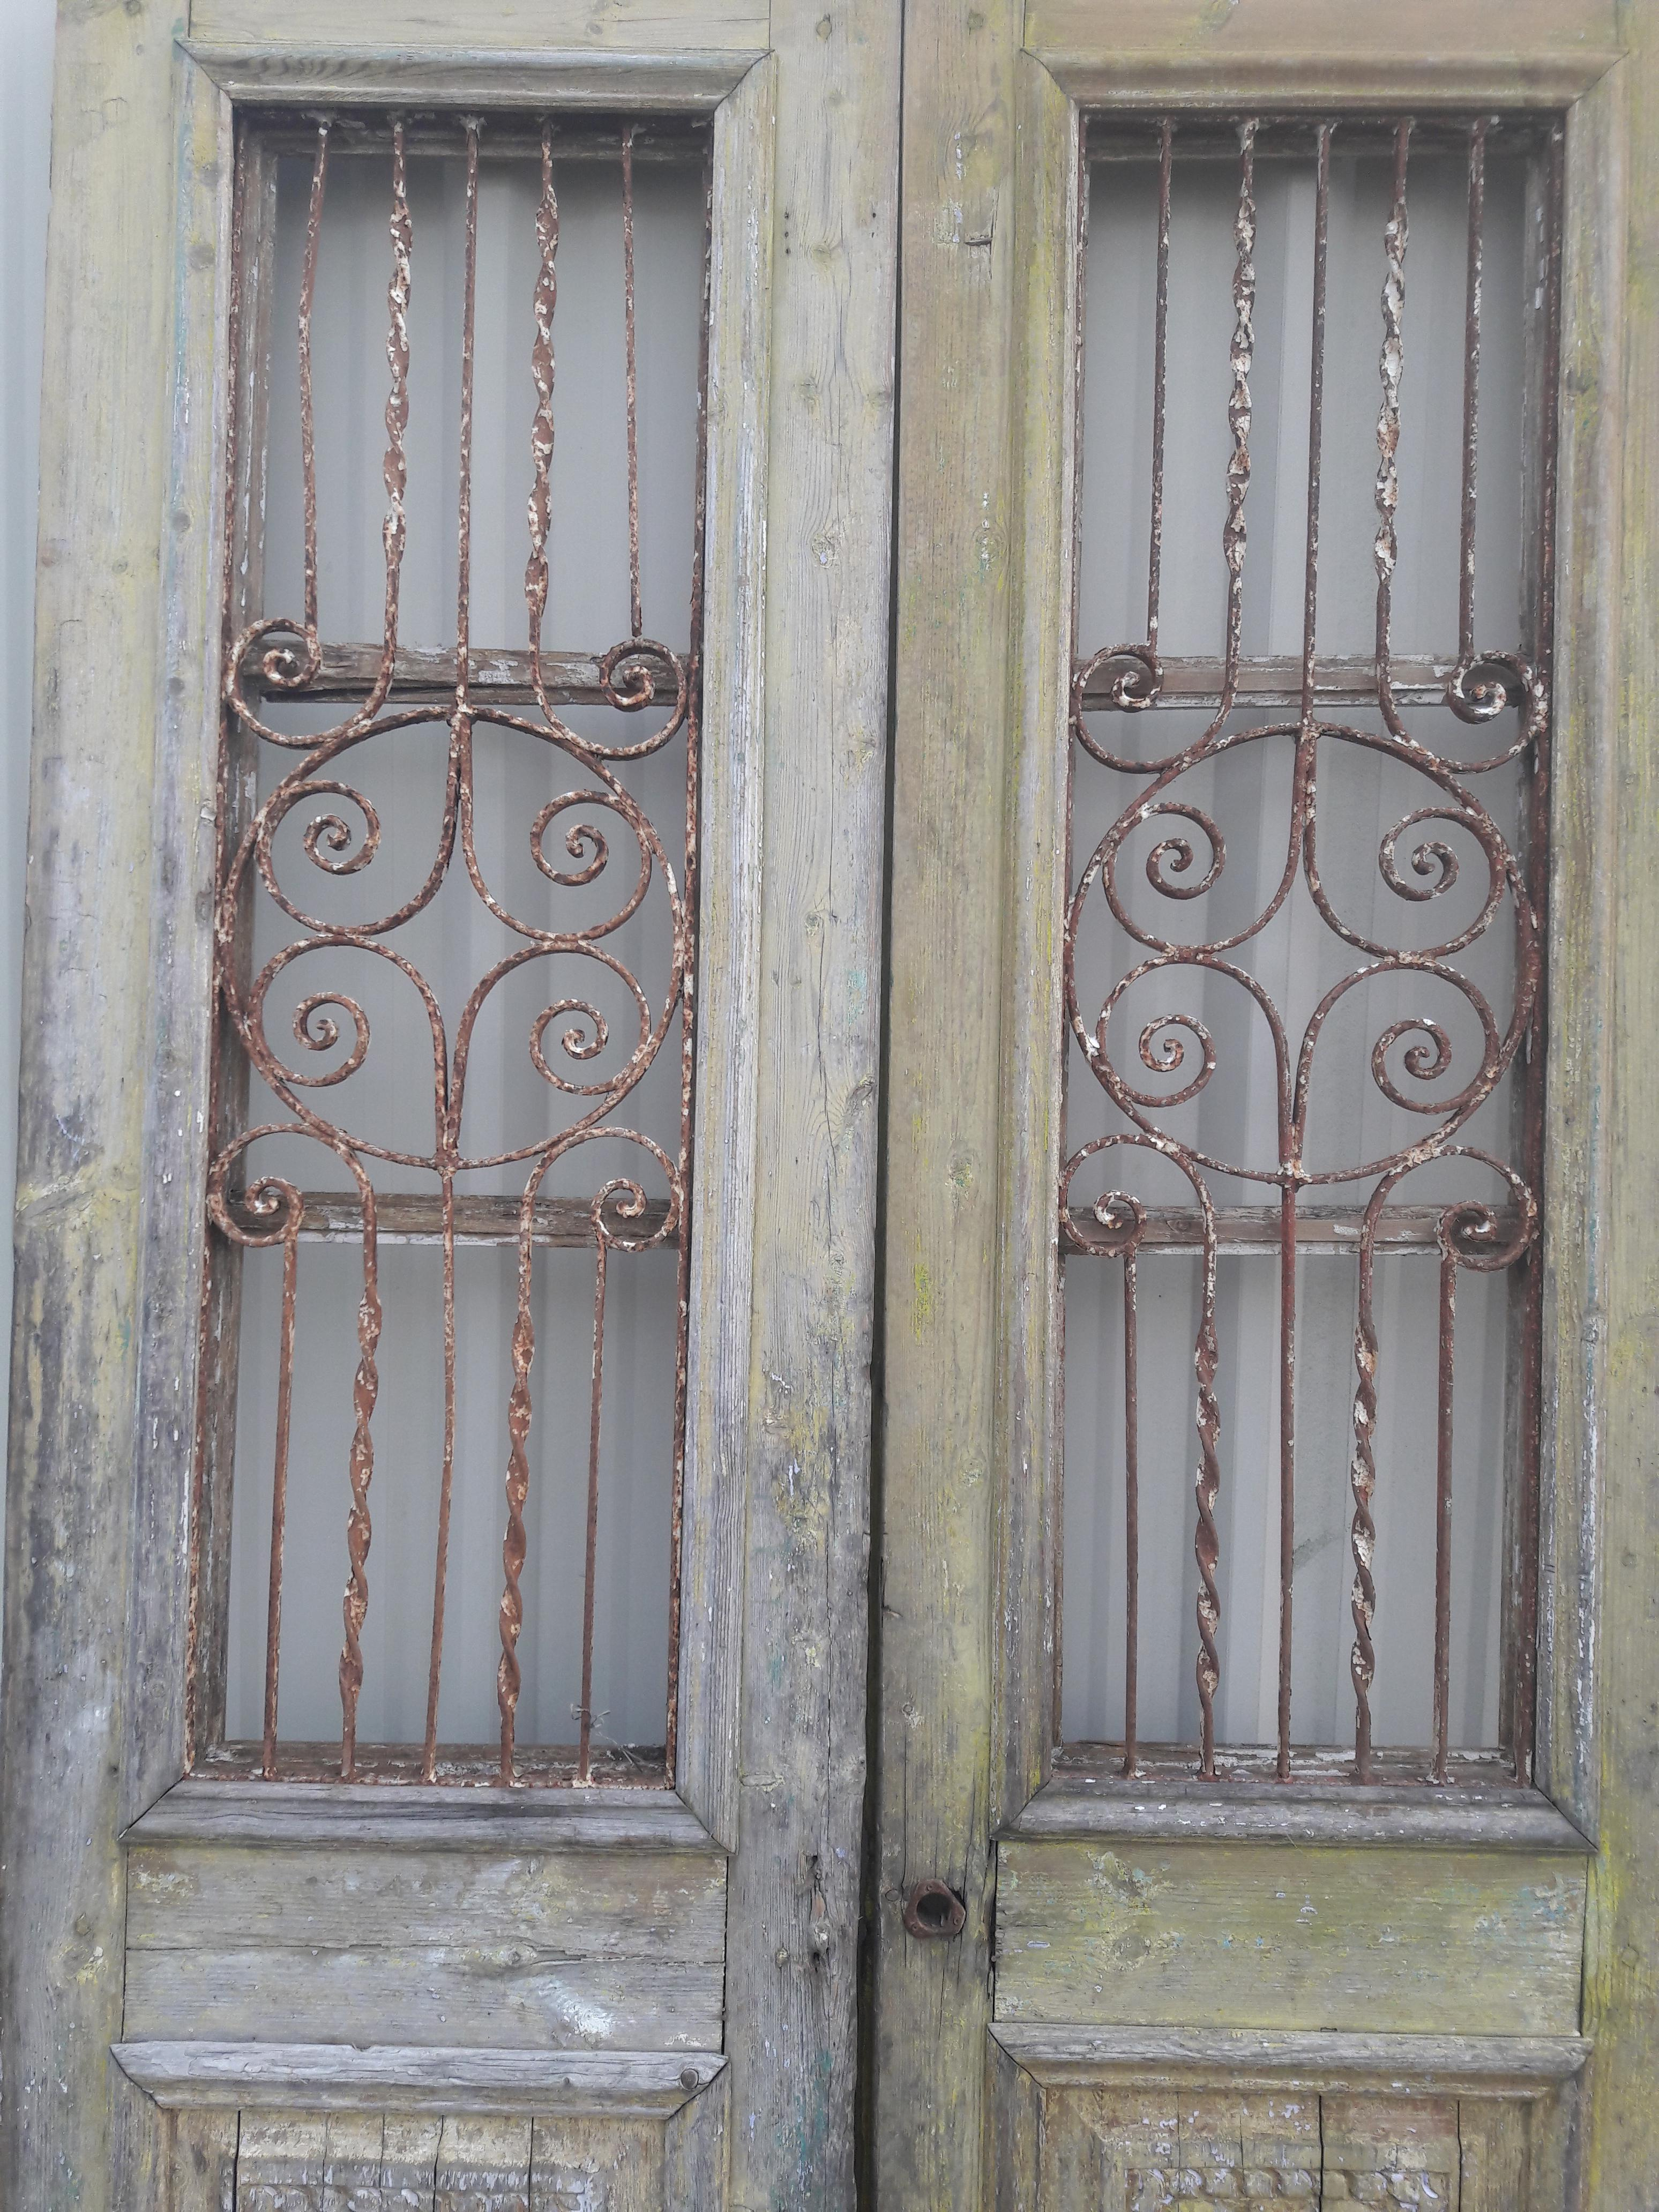 Antique French Iron Grill Door Rustic Farmhouse Natural Doors - a Pair - Image 3 of  sc 1 st  Chairish & Antique French Iron Grill Door Rustic Farmhouse Natural Doors - a ... pezcame.com